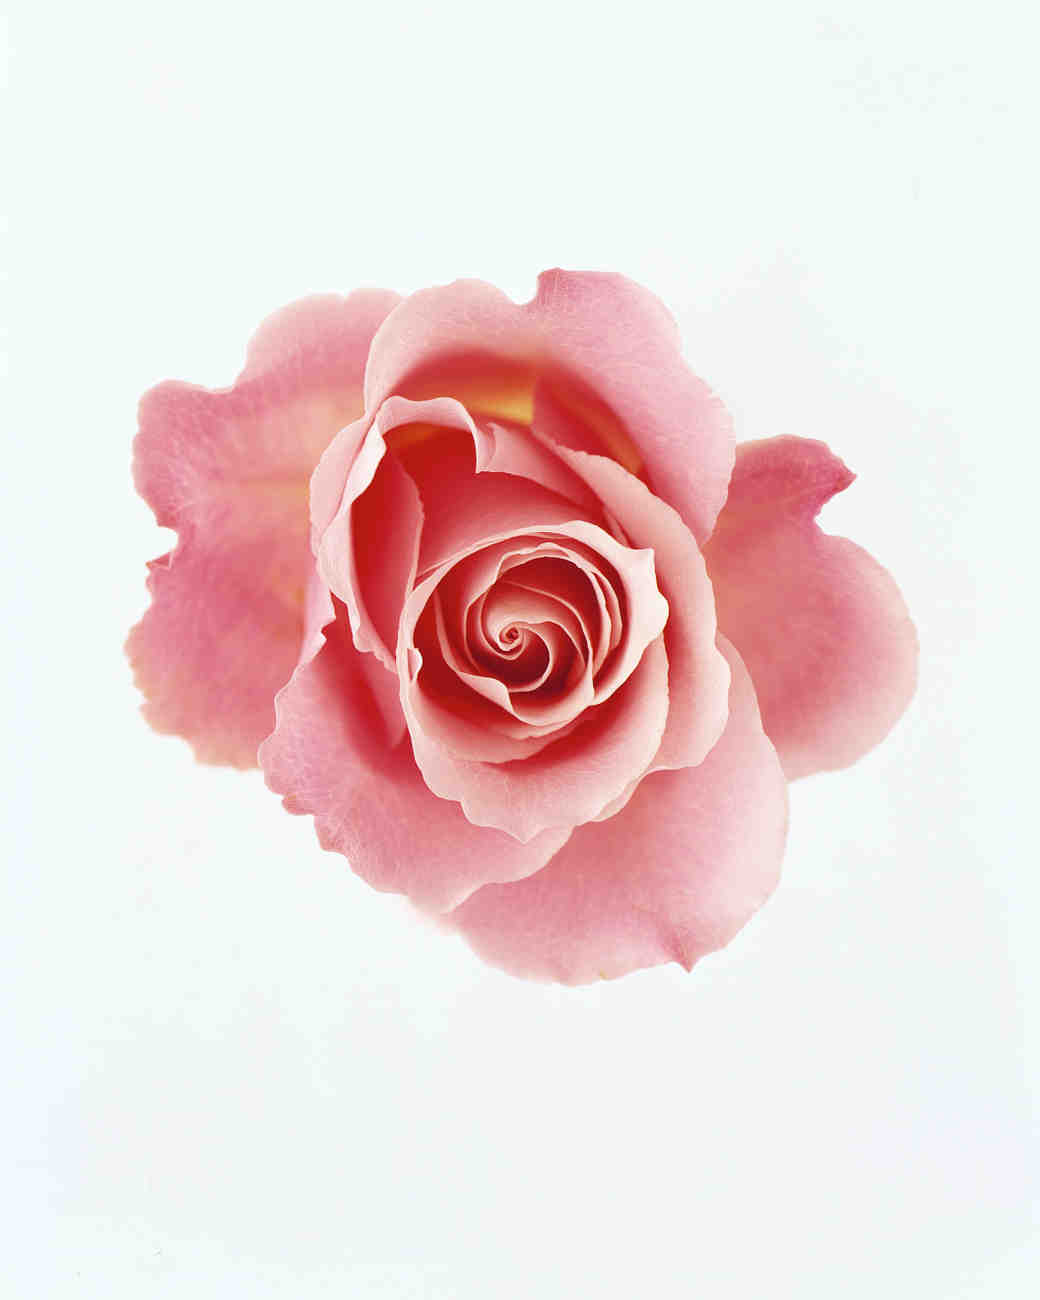 Meaning Of Roses Colors: The Meaning Of Rose Colors